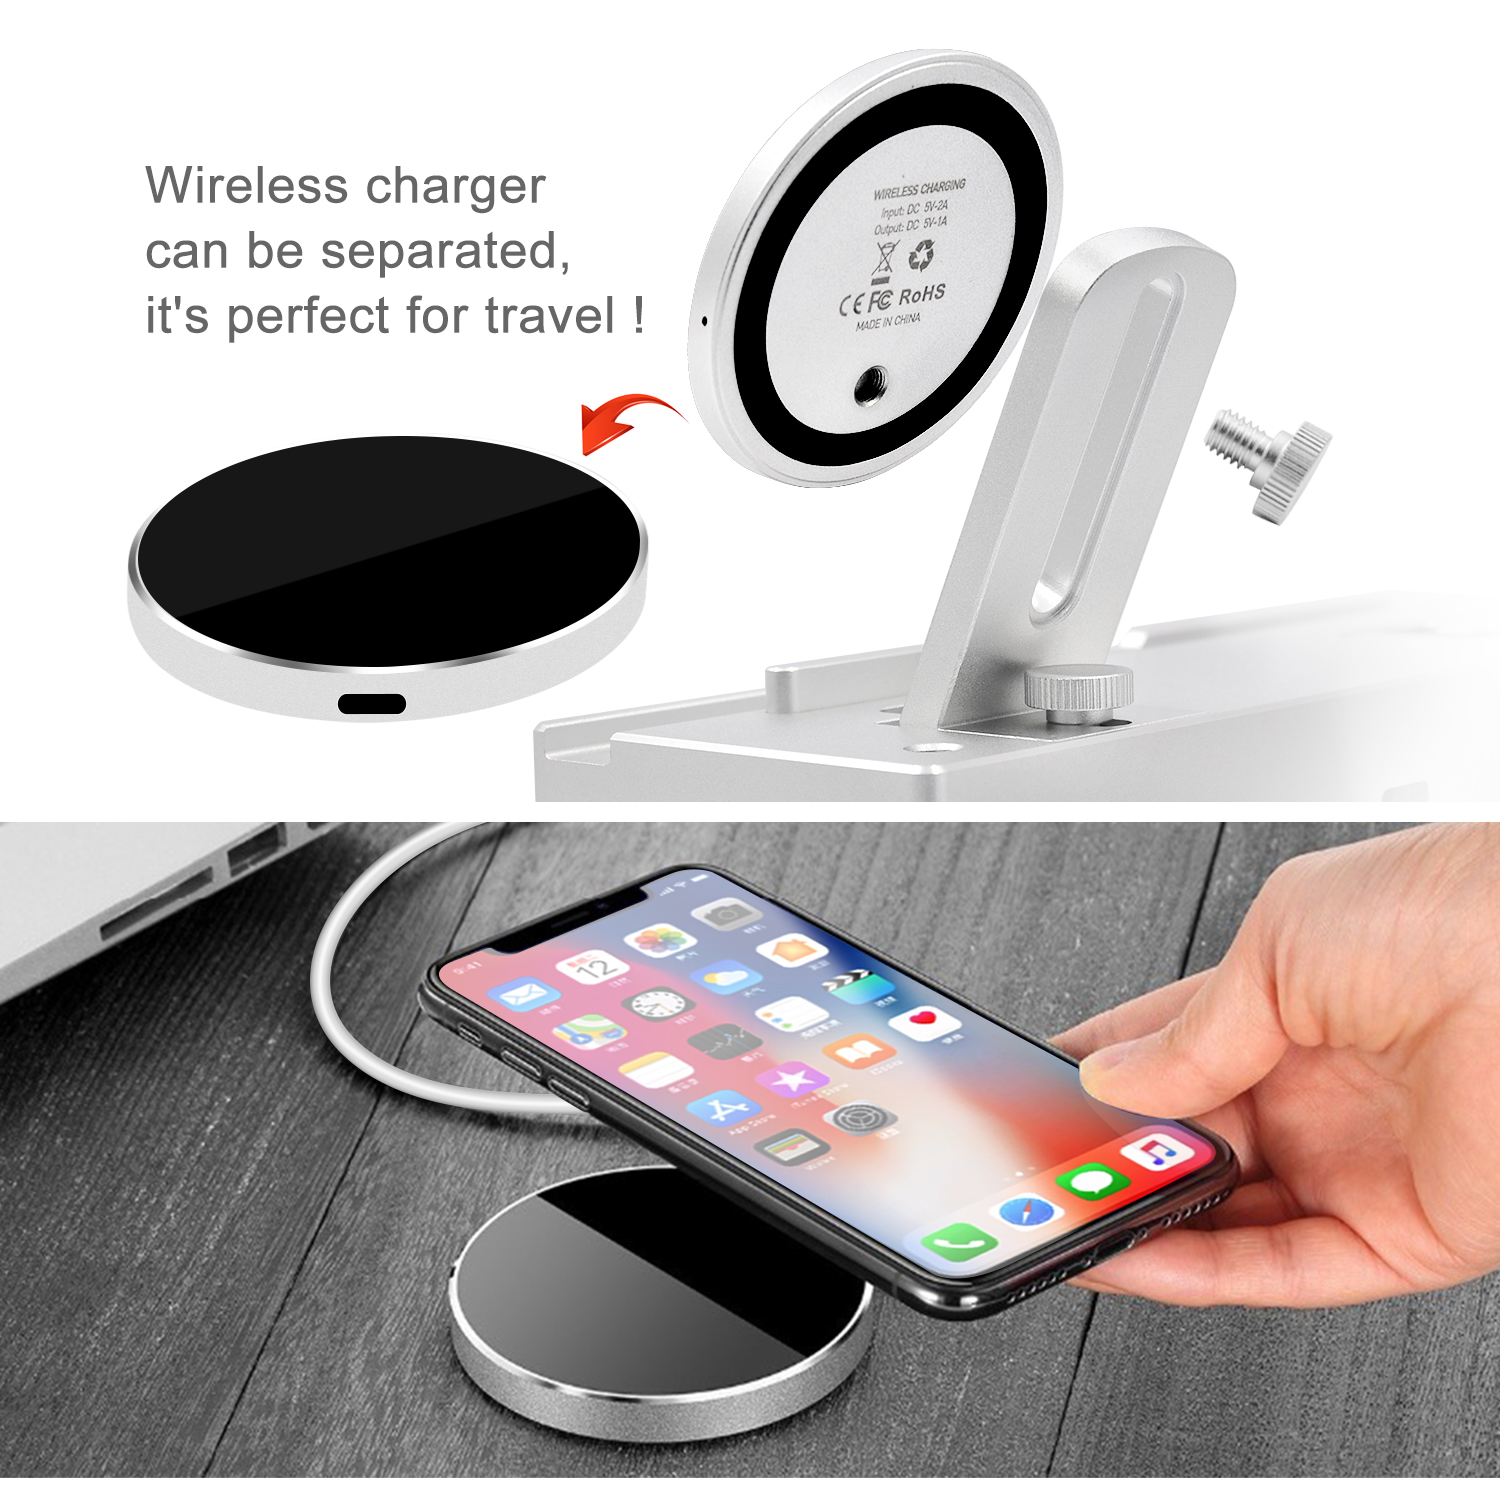 Image 5 - Lefon Qi Wireless Charger Charging Station for iPhone Samsung Smartphone Aluminum Charger Stand for Airpods Apple Watch Pencil-in Chargers from Consumer Electronics